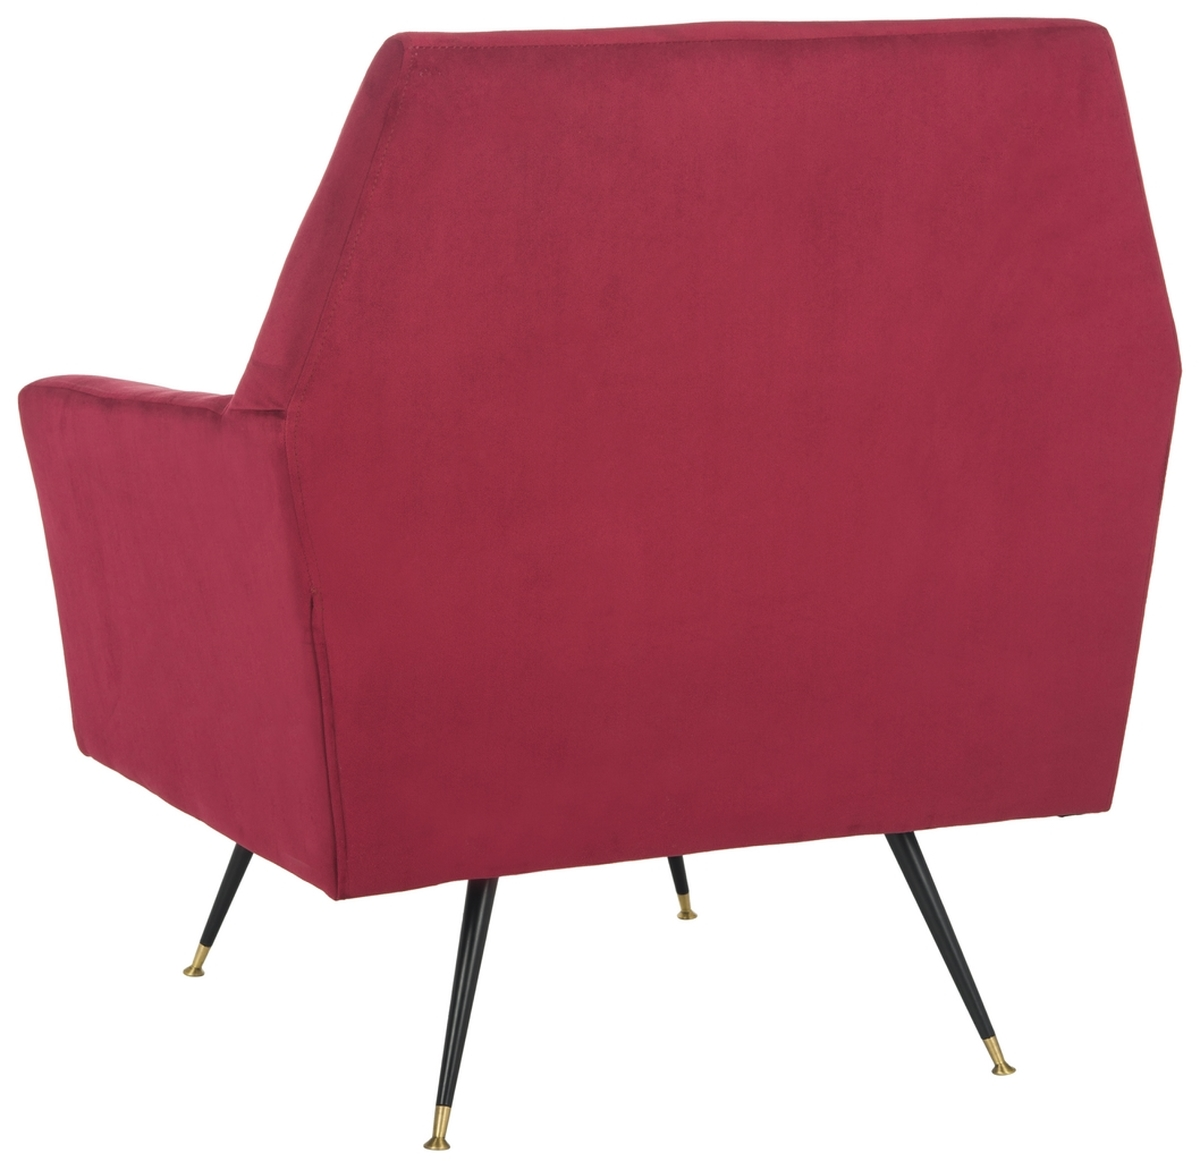 Nynette Velvet Retro Mid Century Accent Chair Item Fox6270a Color Maroon